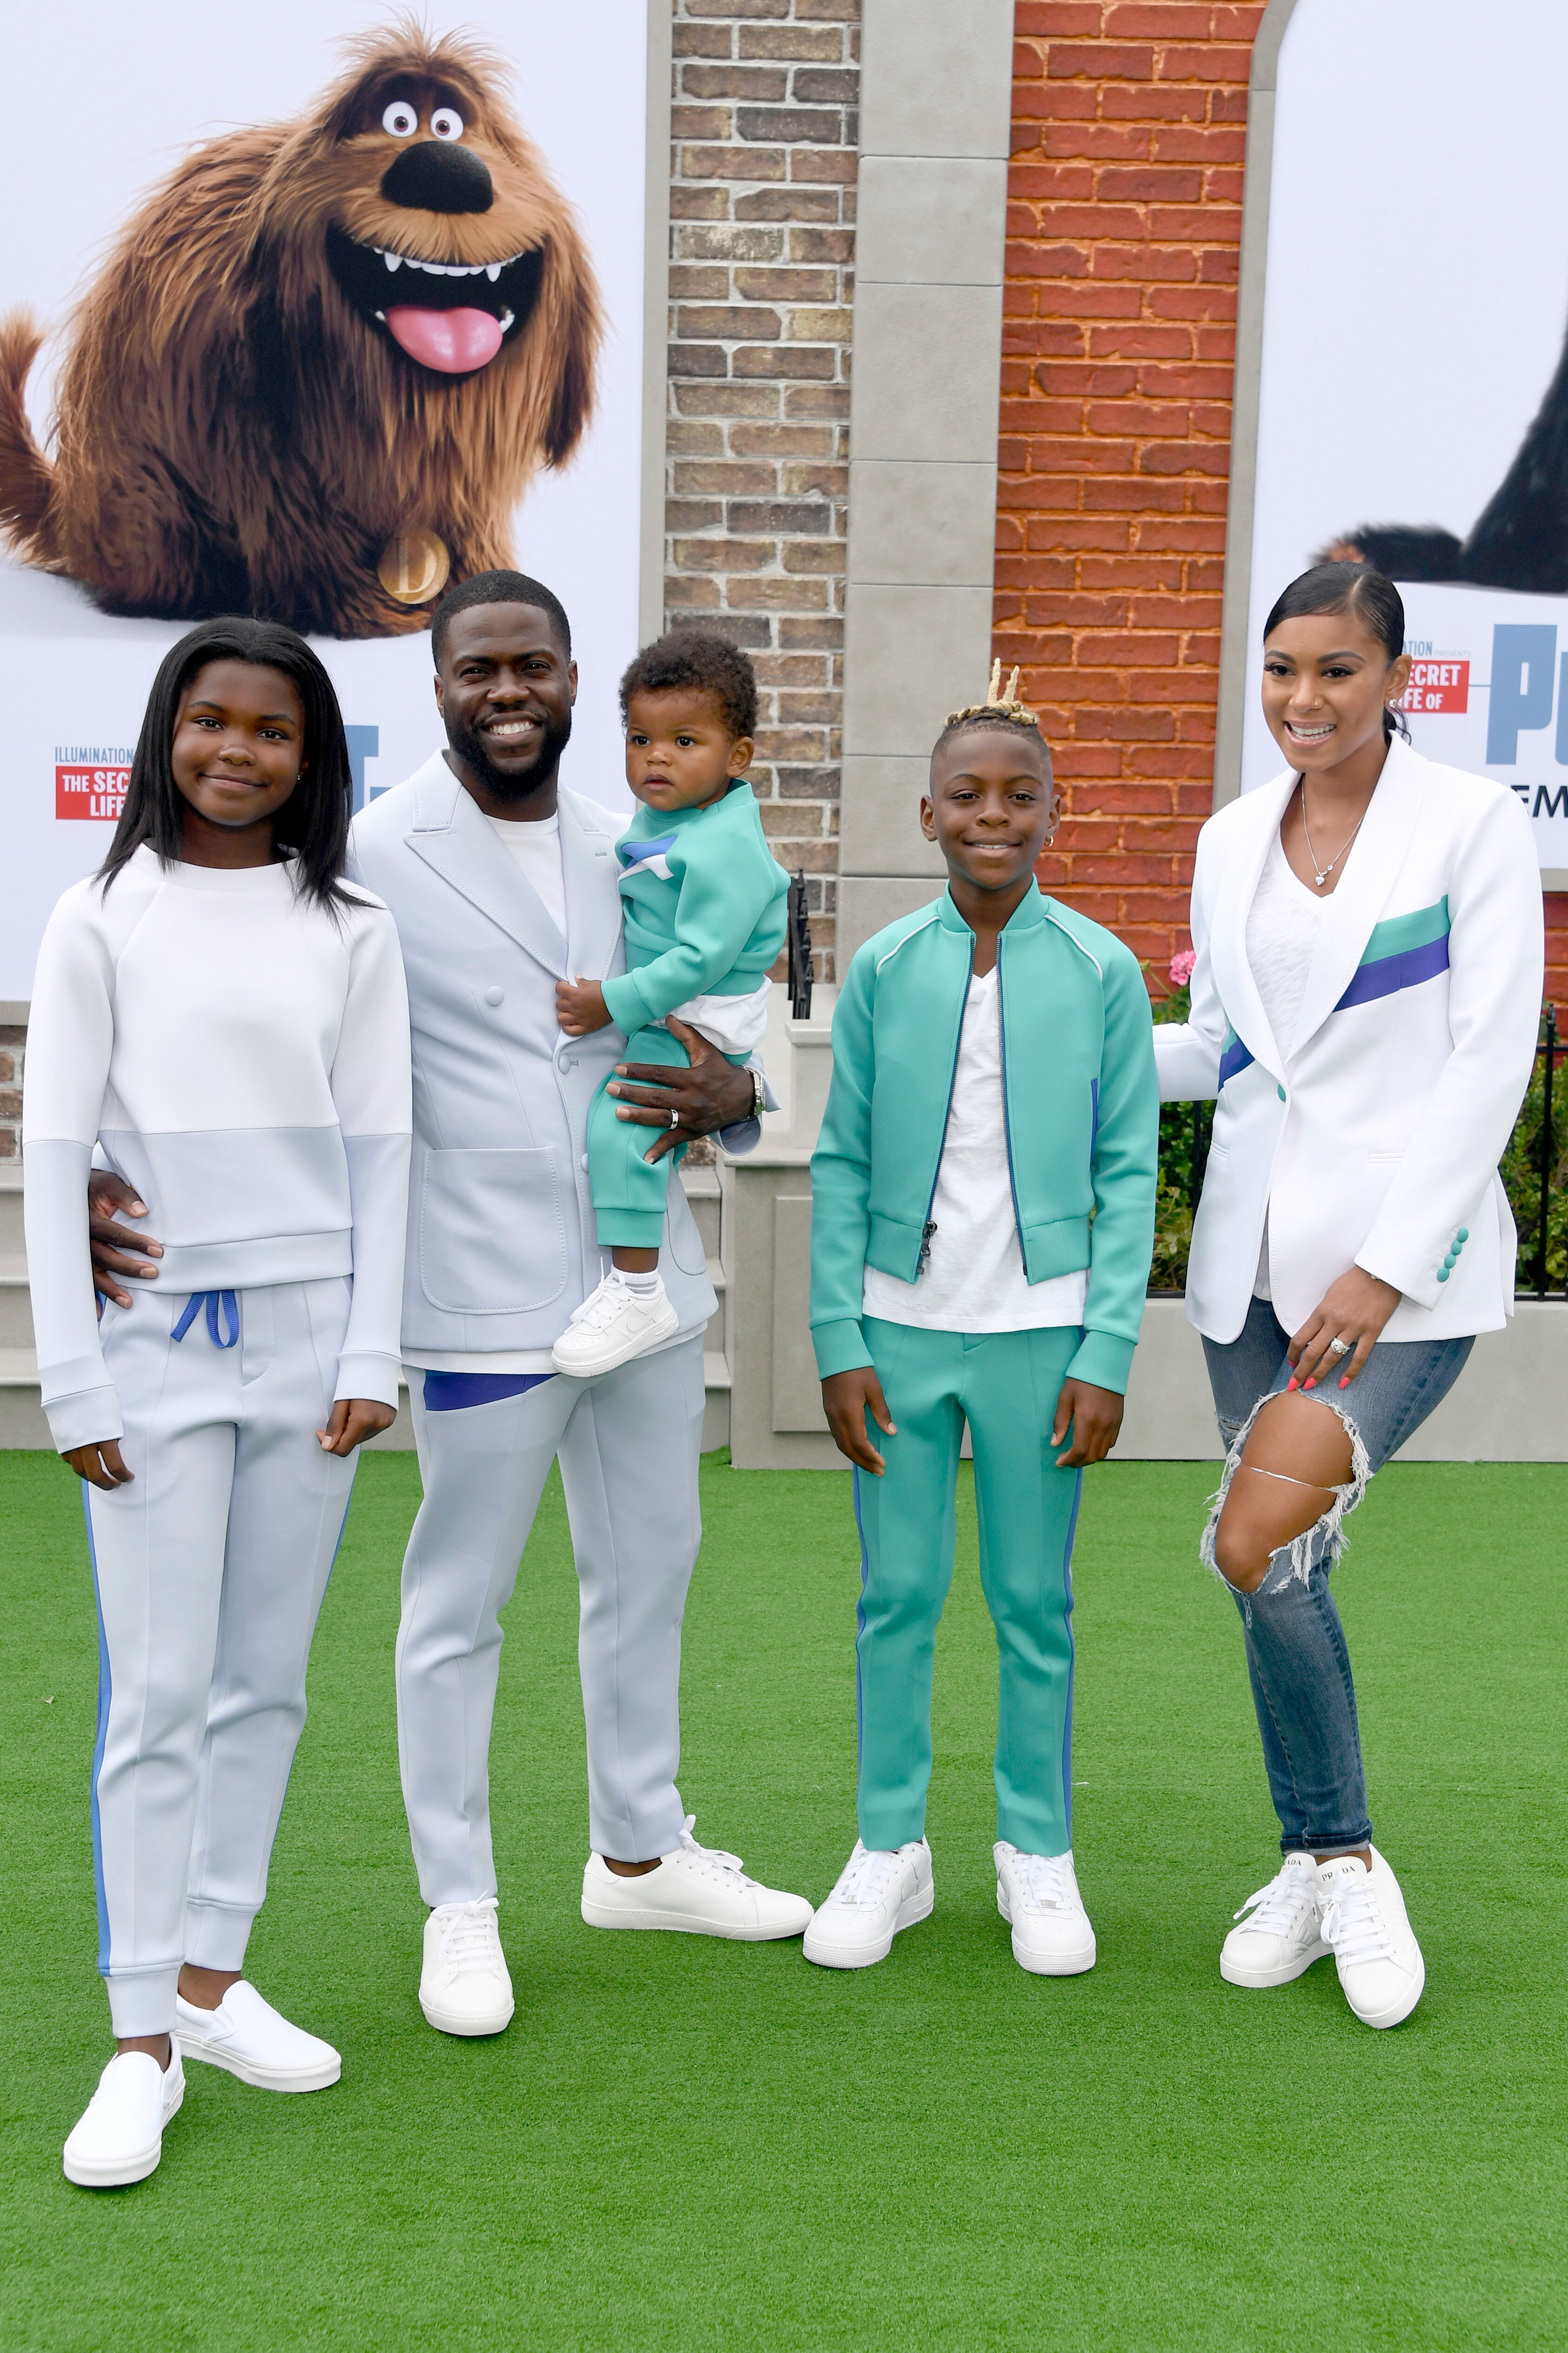 """Kevin Hart and his wife and kids at the premiere of """"The Secret Life of Pets 2""""   Source: Getty Images/GlobalImagesUkraine"""